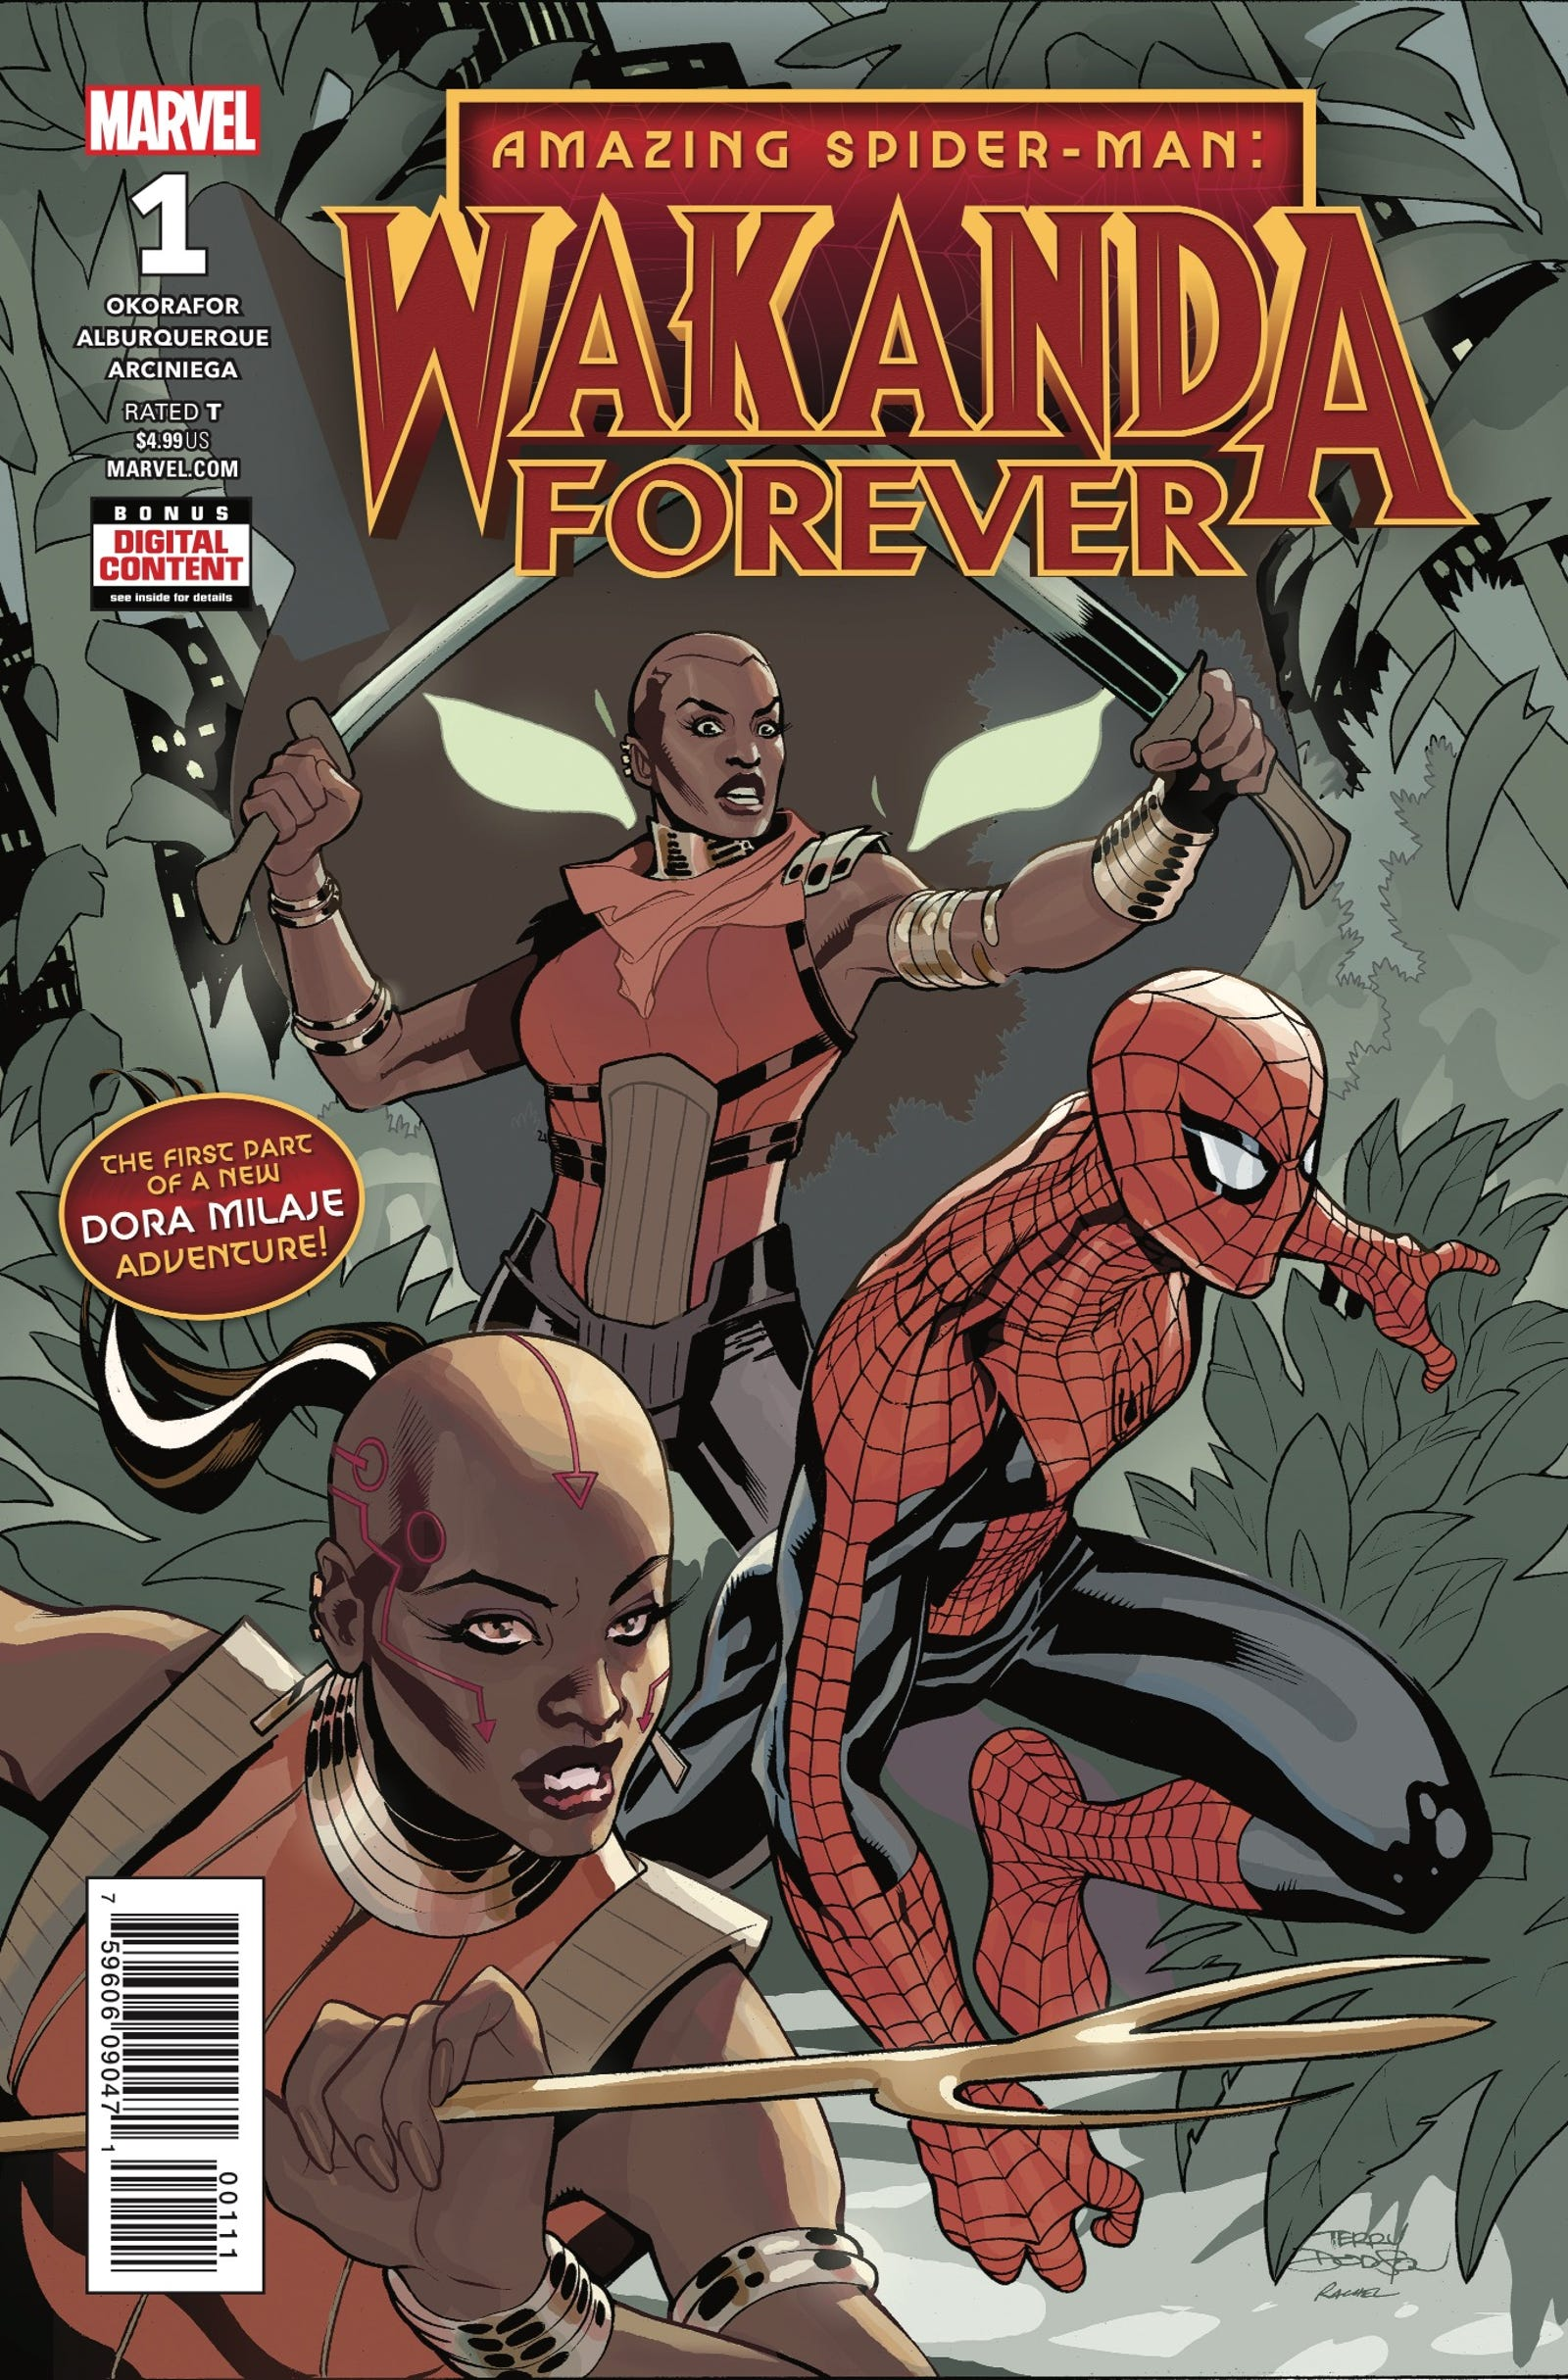 Cover by Terry and Rachel Dodson